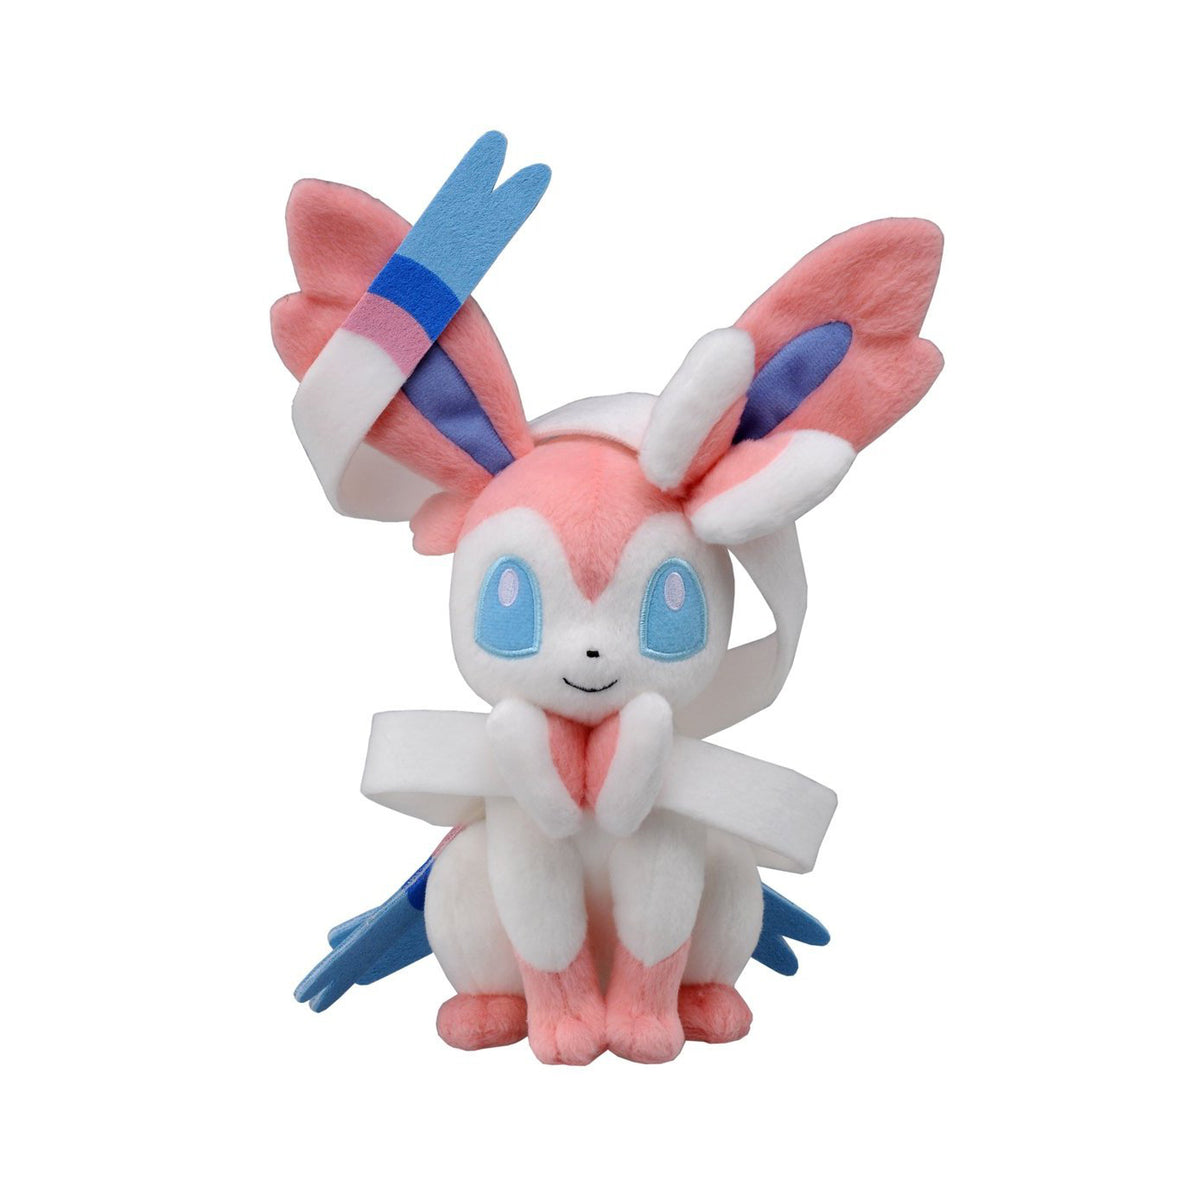 "Pokemon 12"" Sylveon Plush"